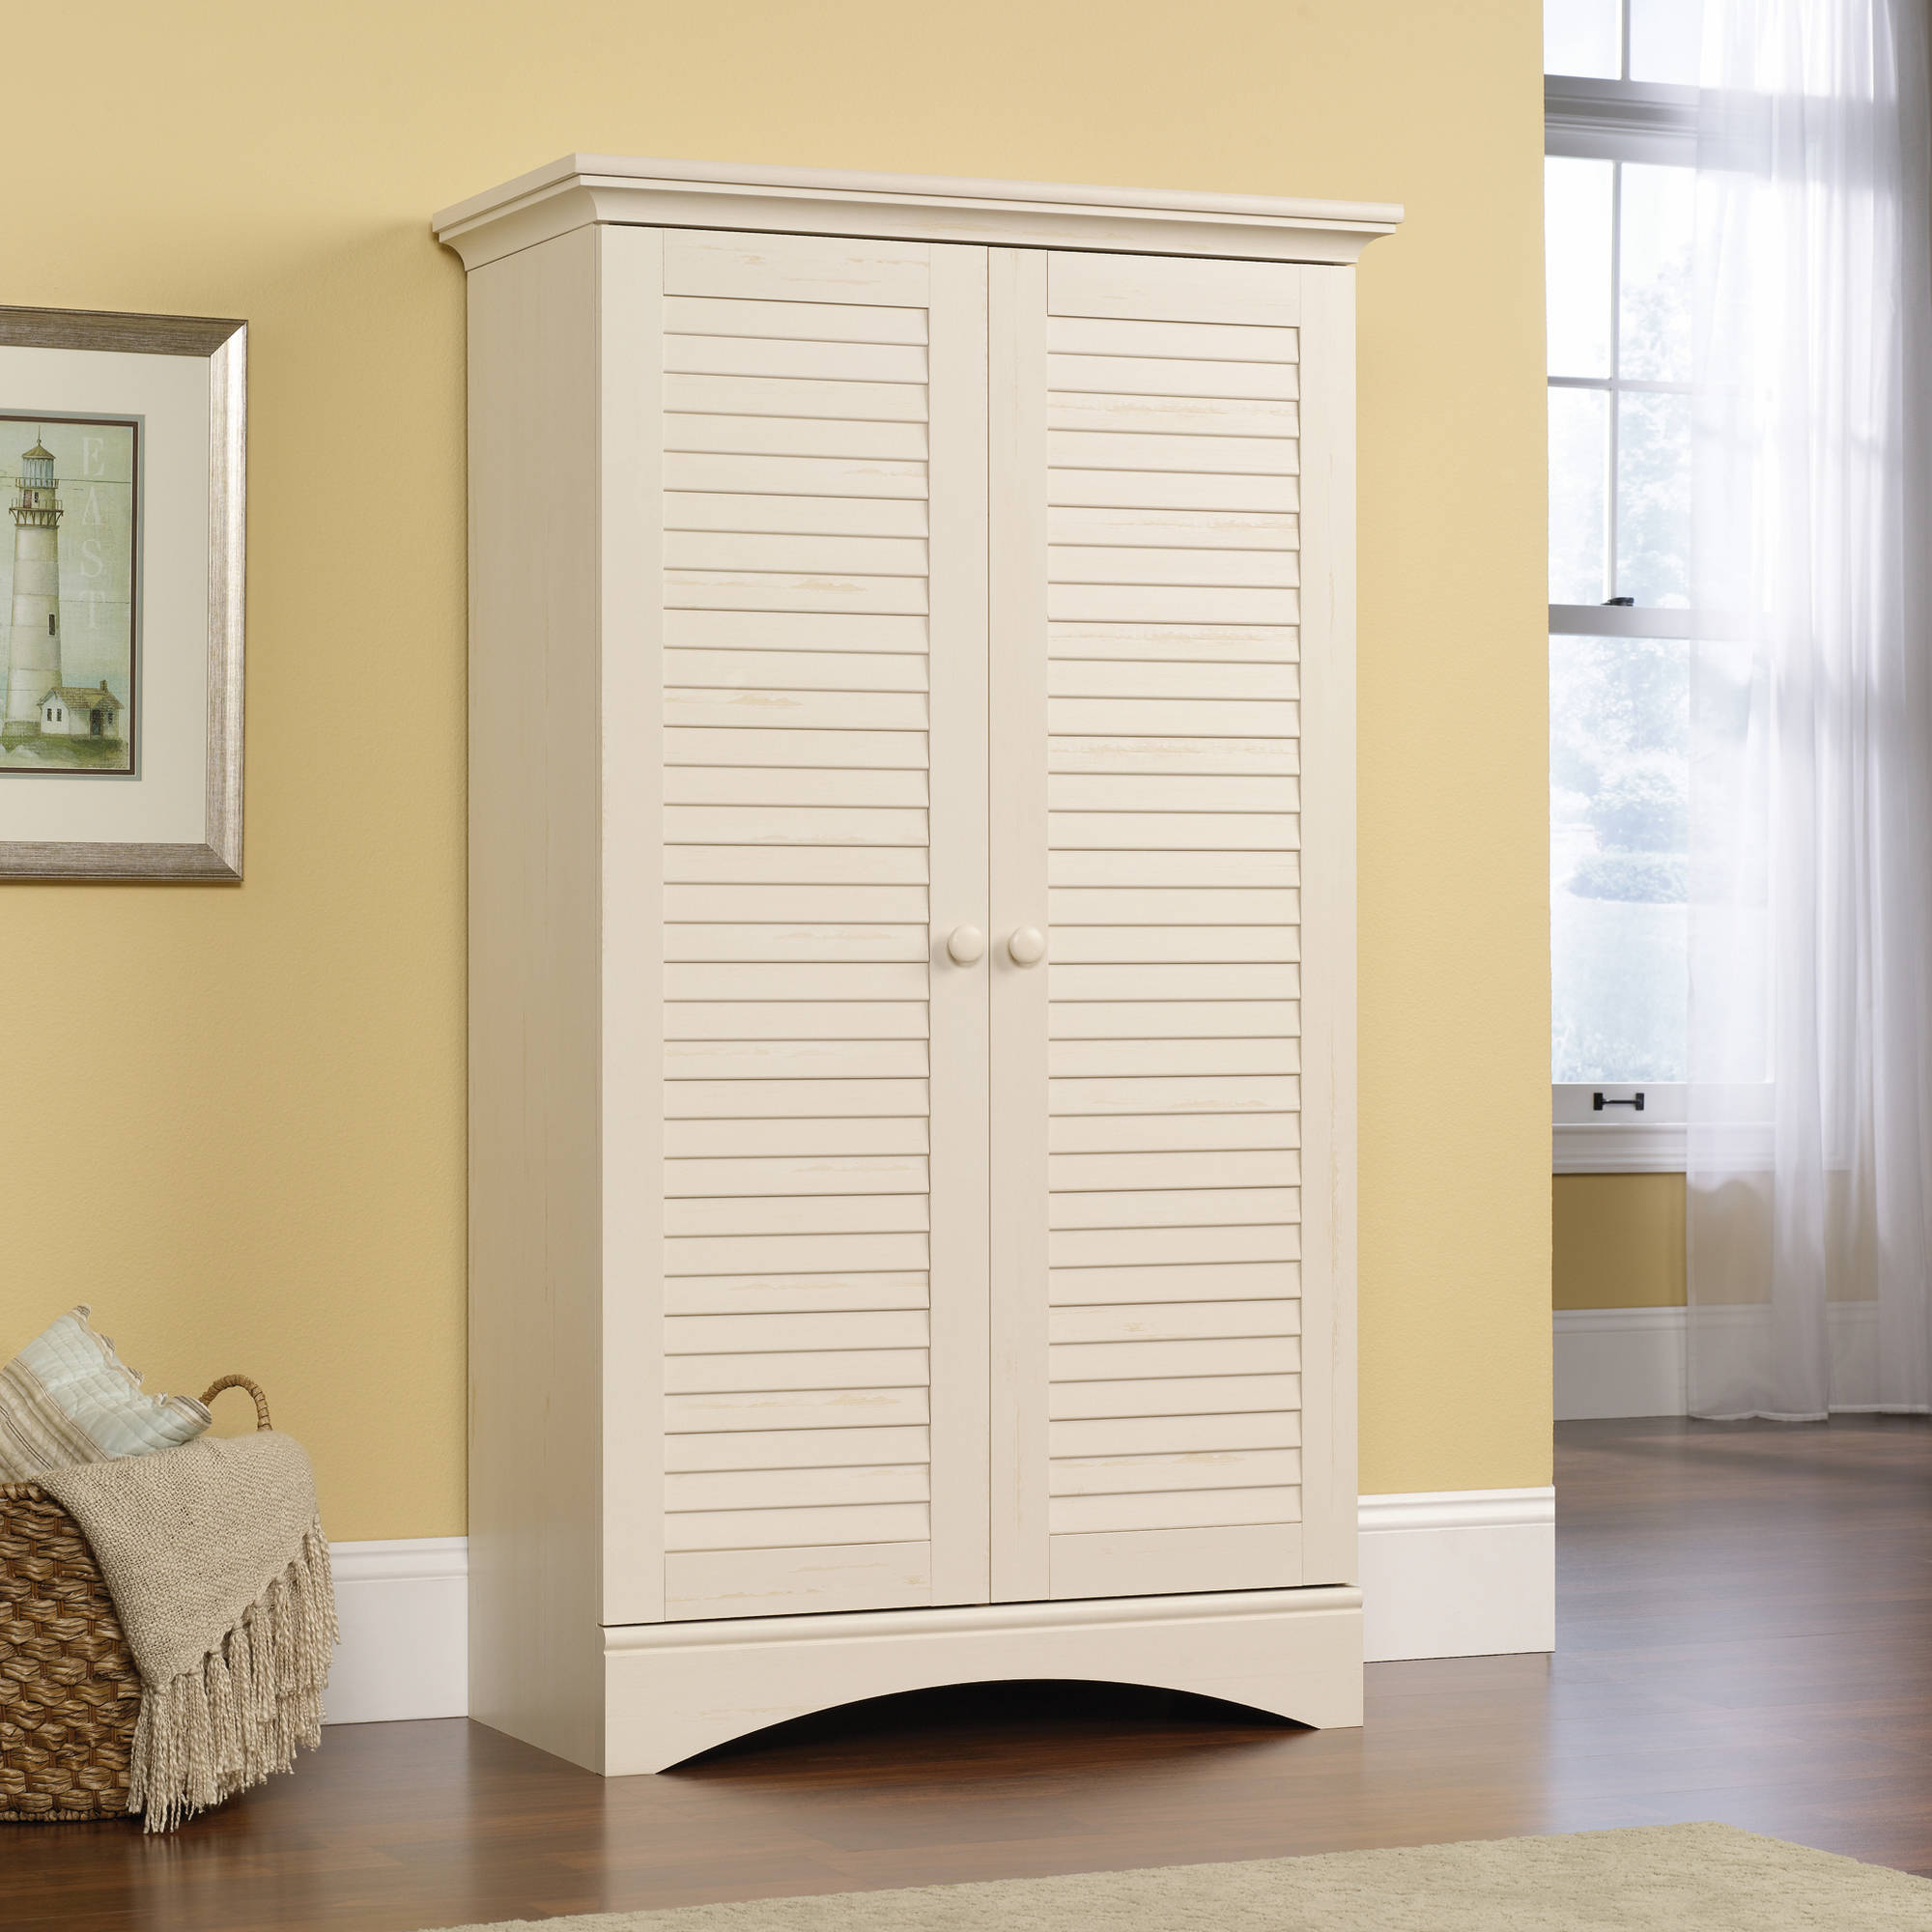 Storage Cabinet With Locking Doors Sauder Homeplus Storage Cabinet Walmartcom